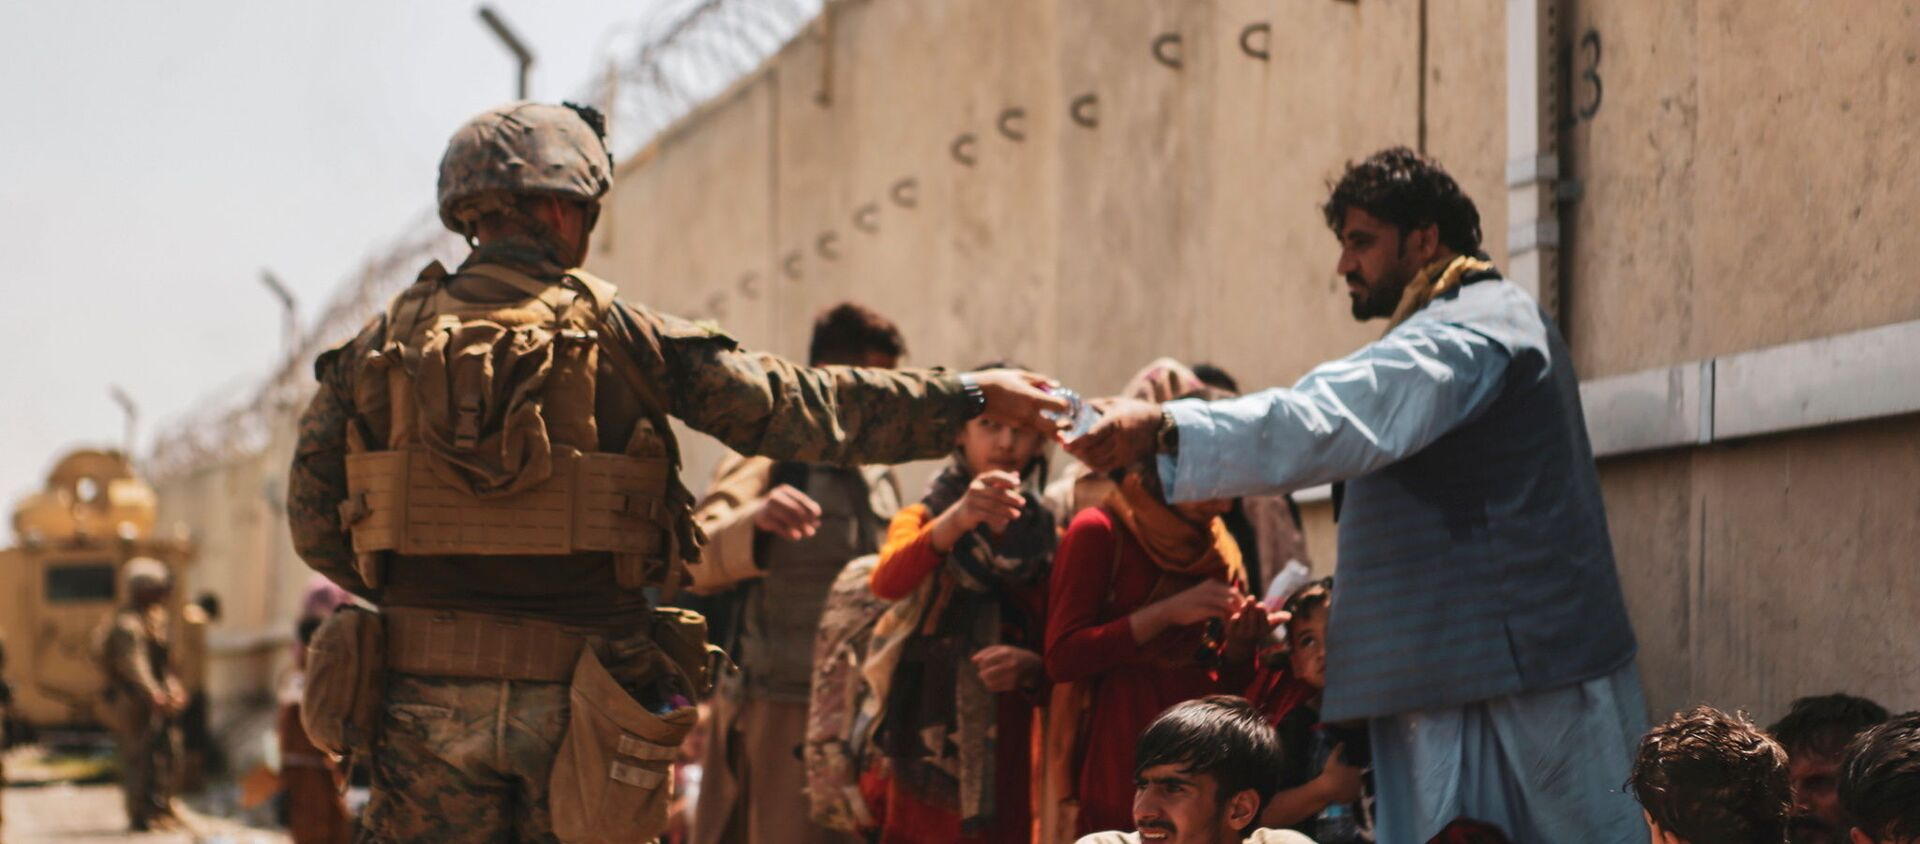 A US Marine passes out water to evacuees during an evacuation at Hamid Karzai International Airport, Kabul, Afghanistan, August 22, 2021 - Sputnik International, 1920, 25.08.2021